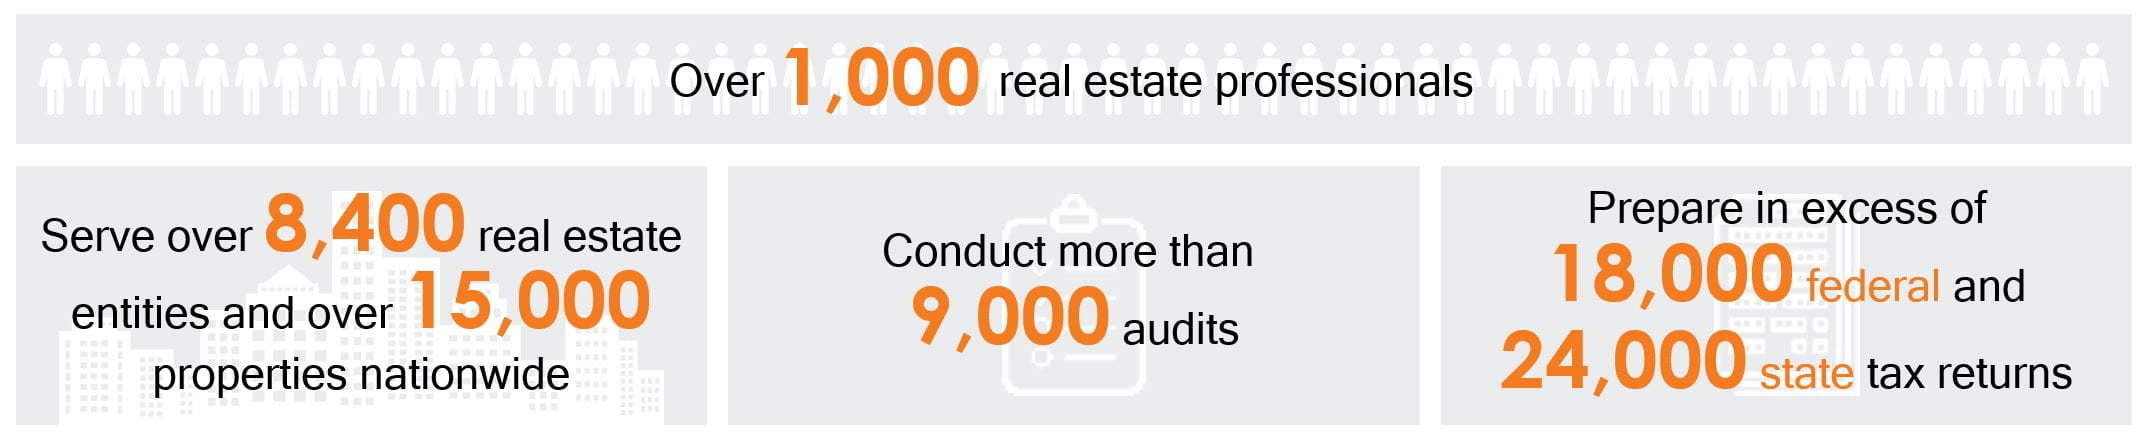 COHNREZNICK COMMERCIAL REAL ESTATE INDUSTRY PRACTICE OVERVIEW